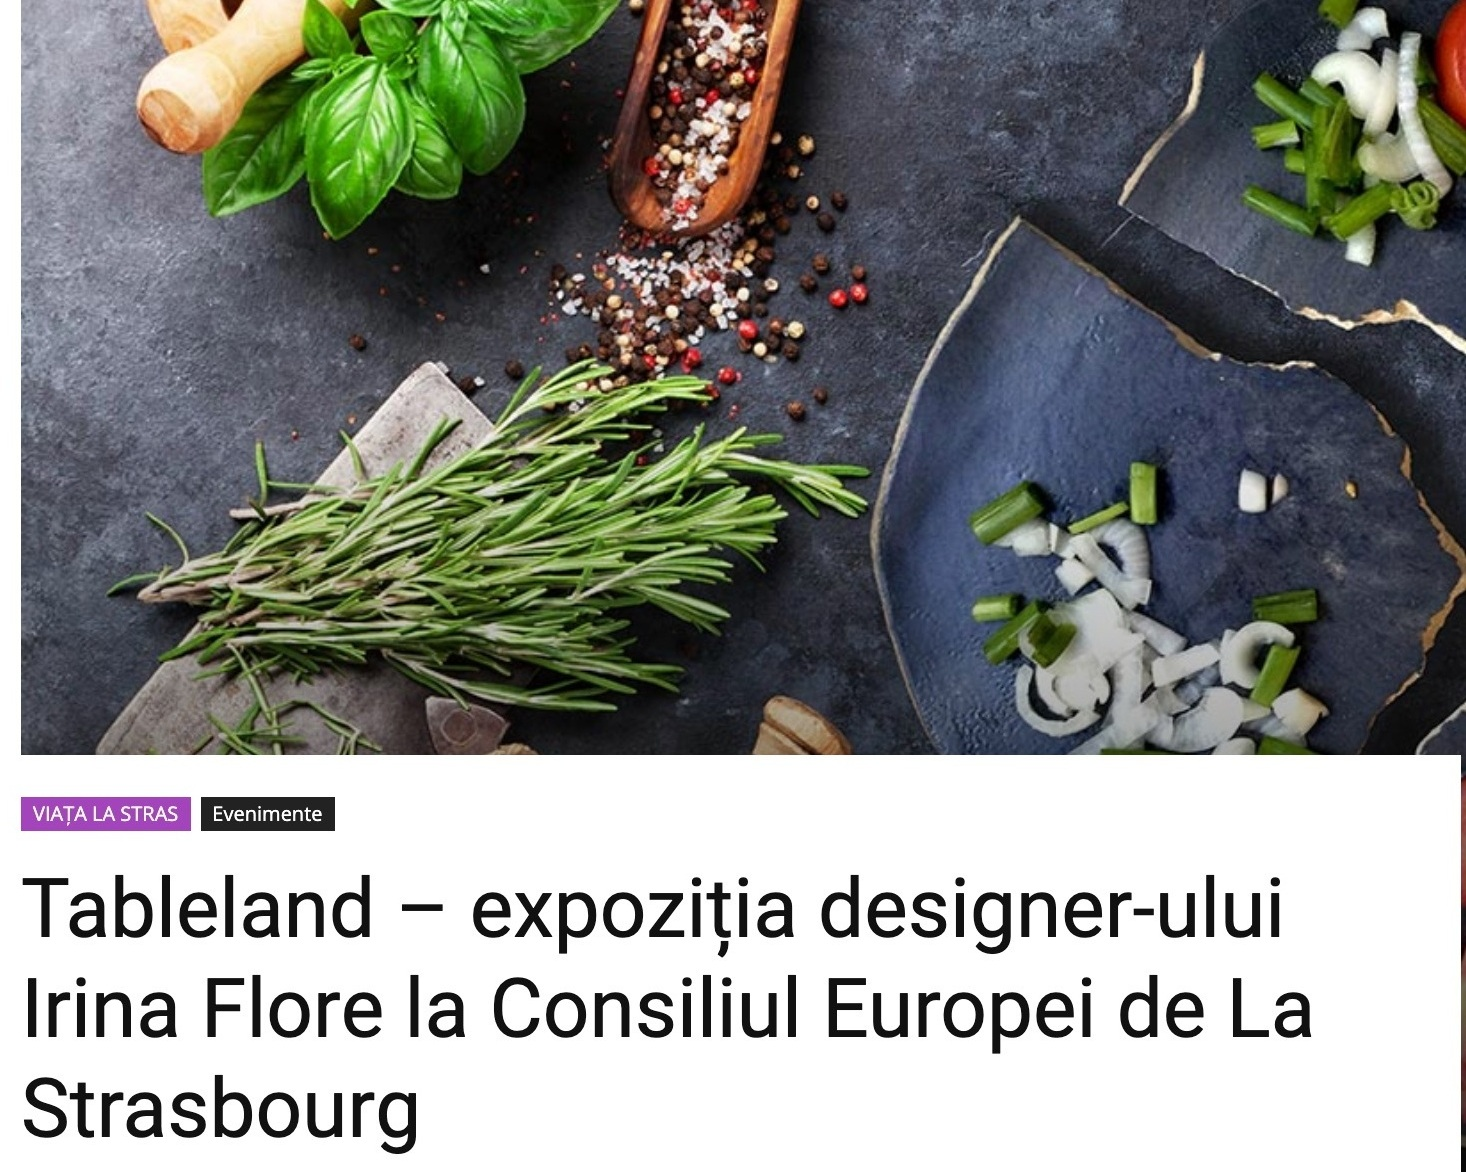 New article about Tableland - Article about the Tableland exhibition at the European Council in lastrasbourg.ro